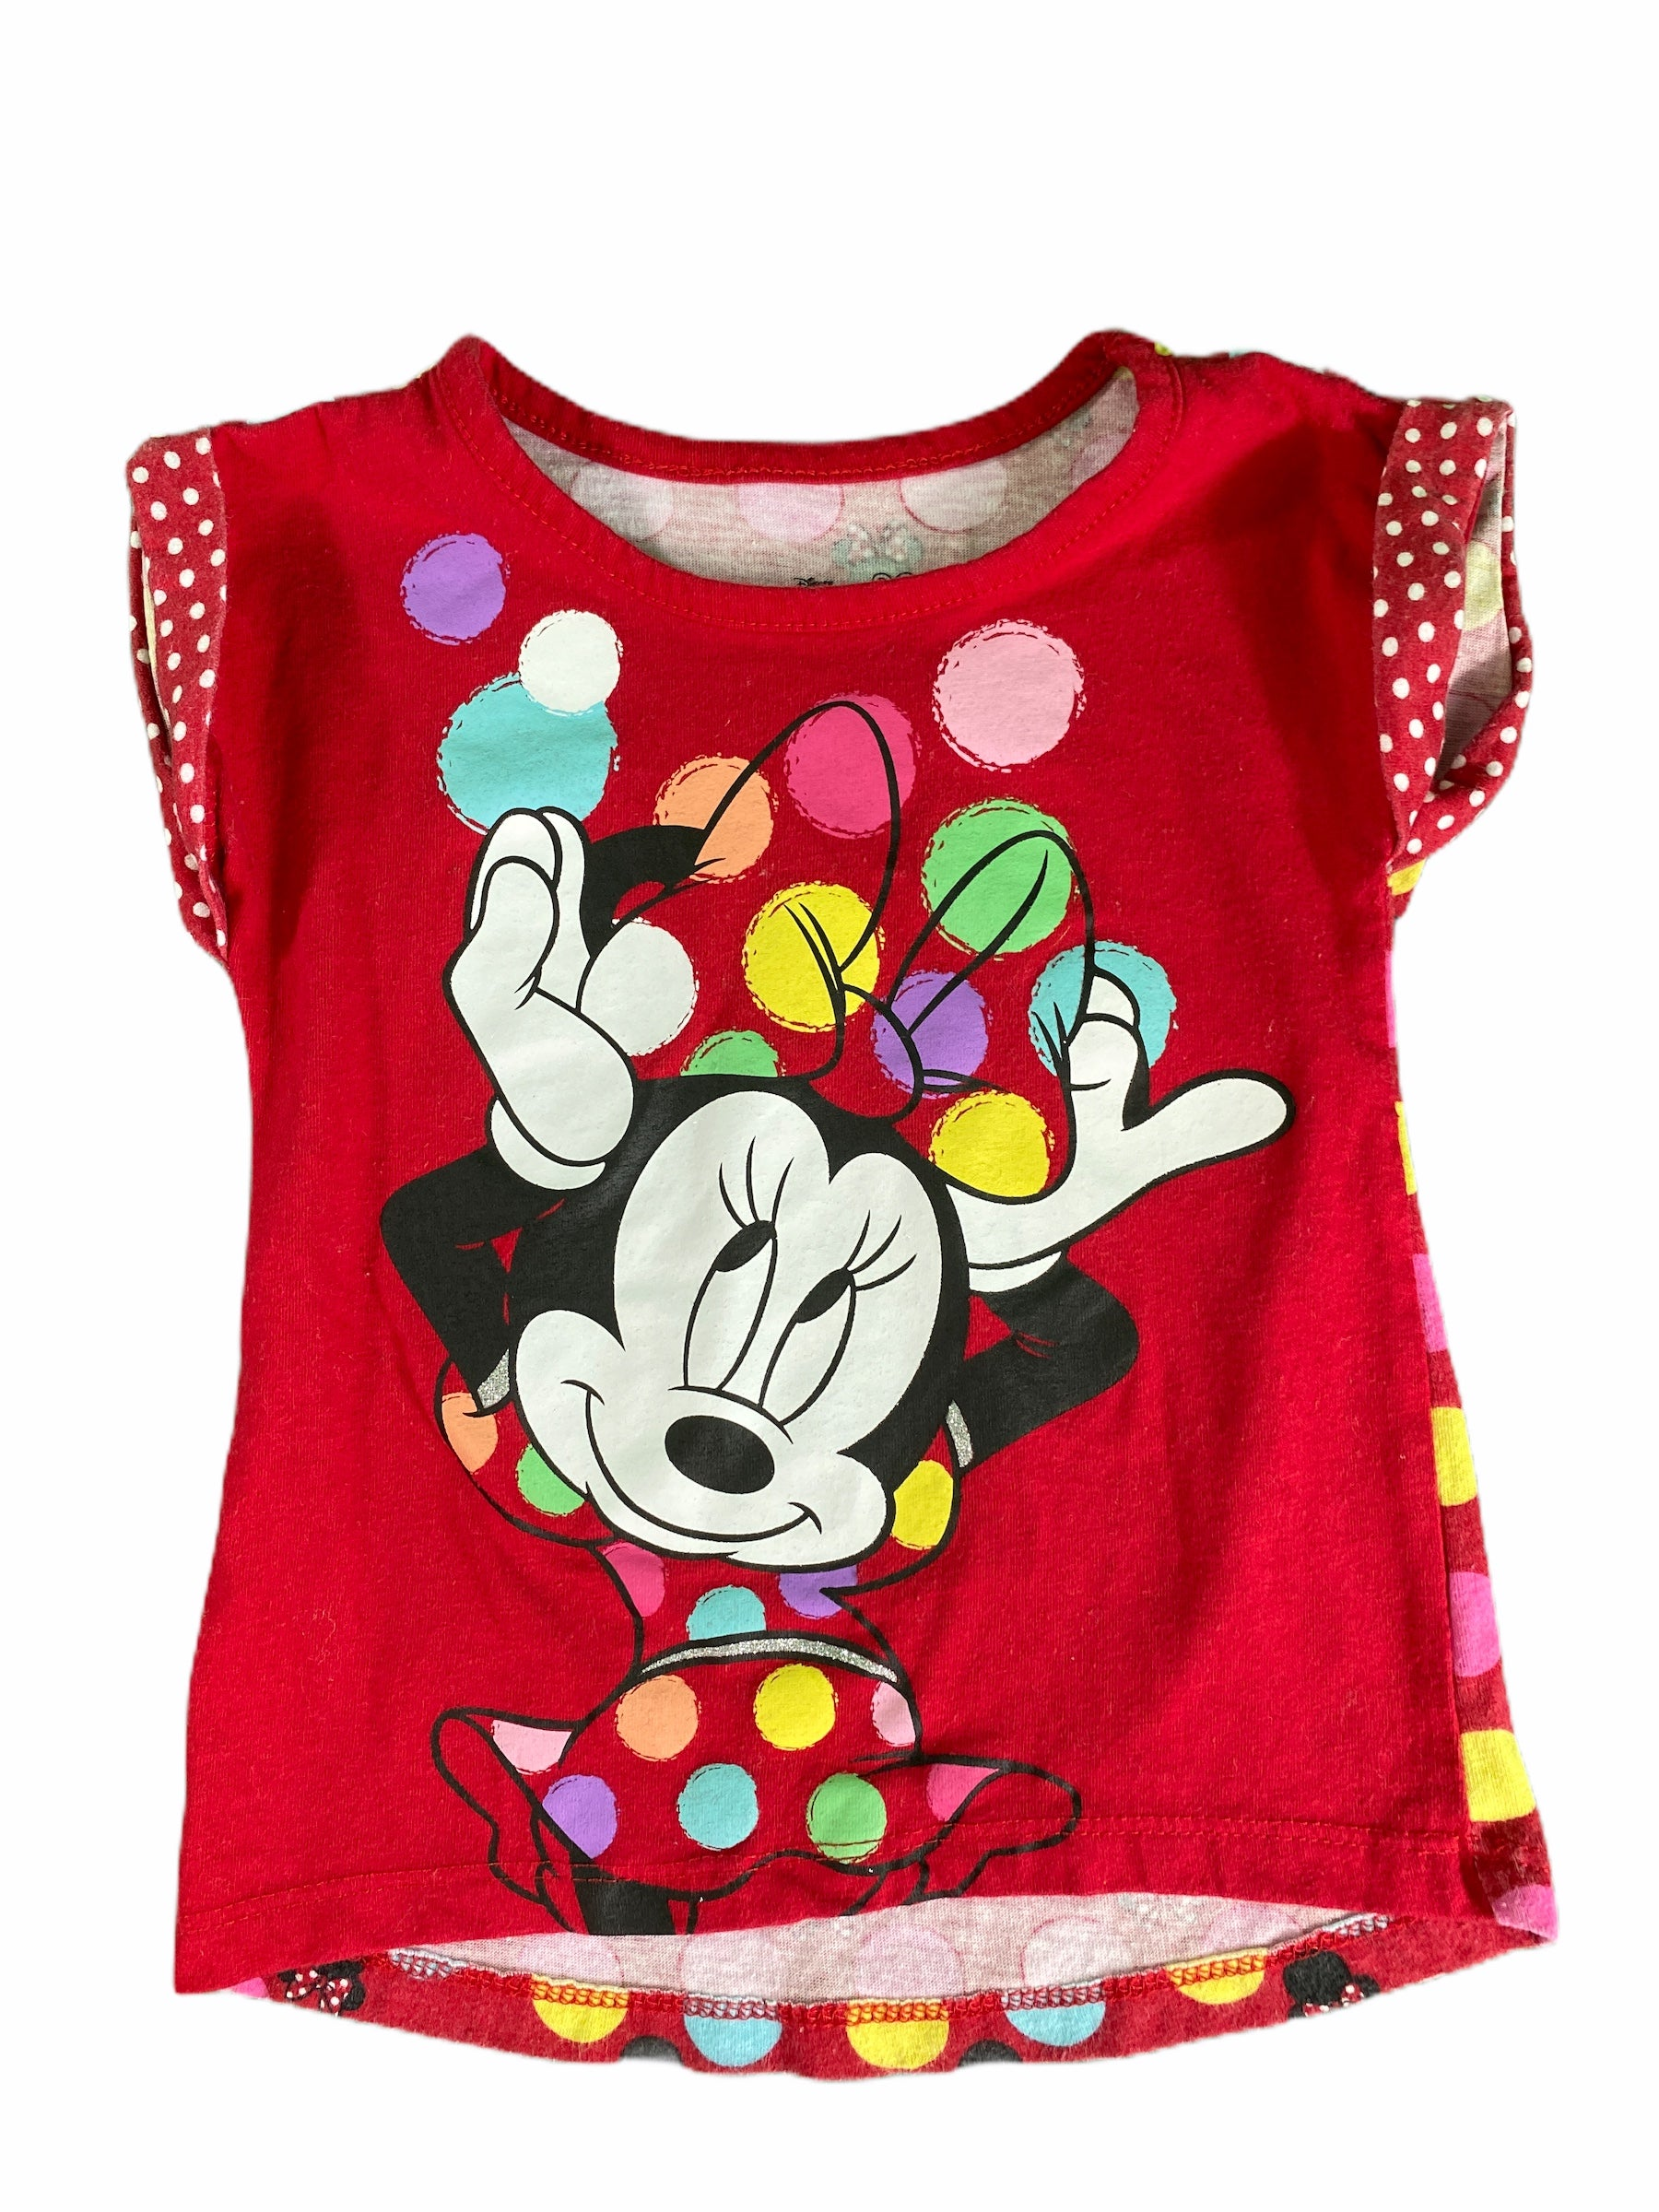 Disney Red Minnie Mouse Tee (2T Girls)